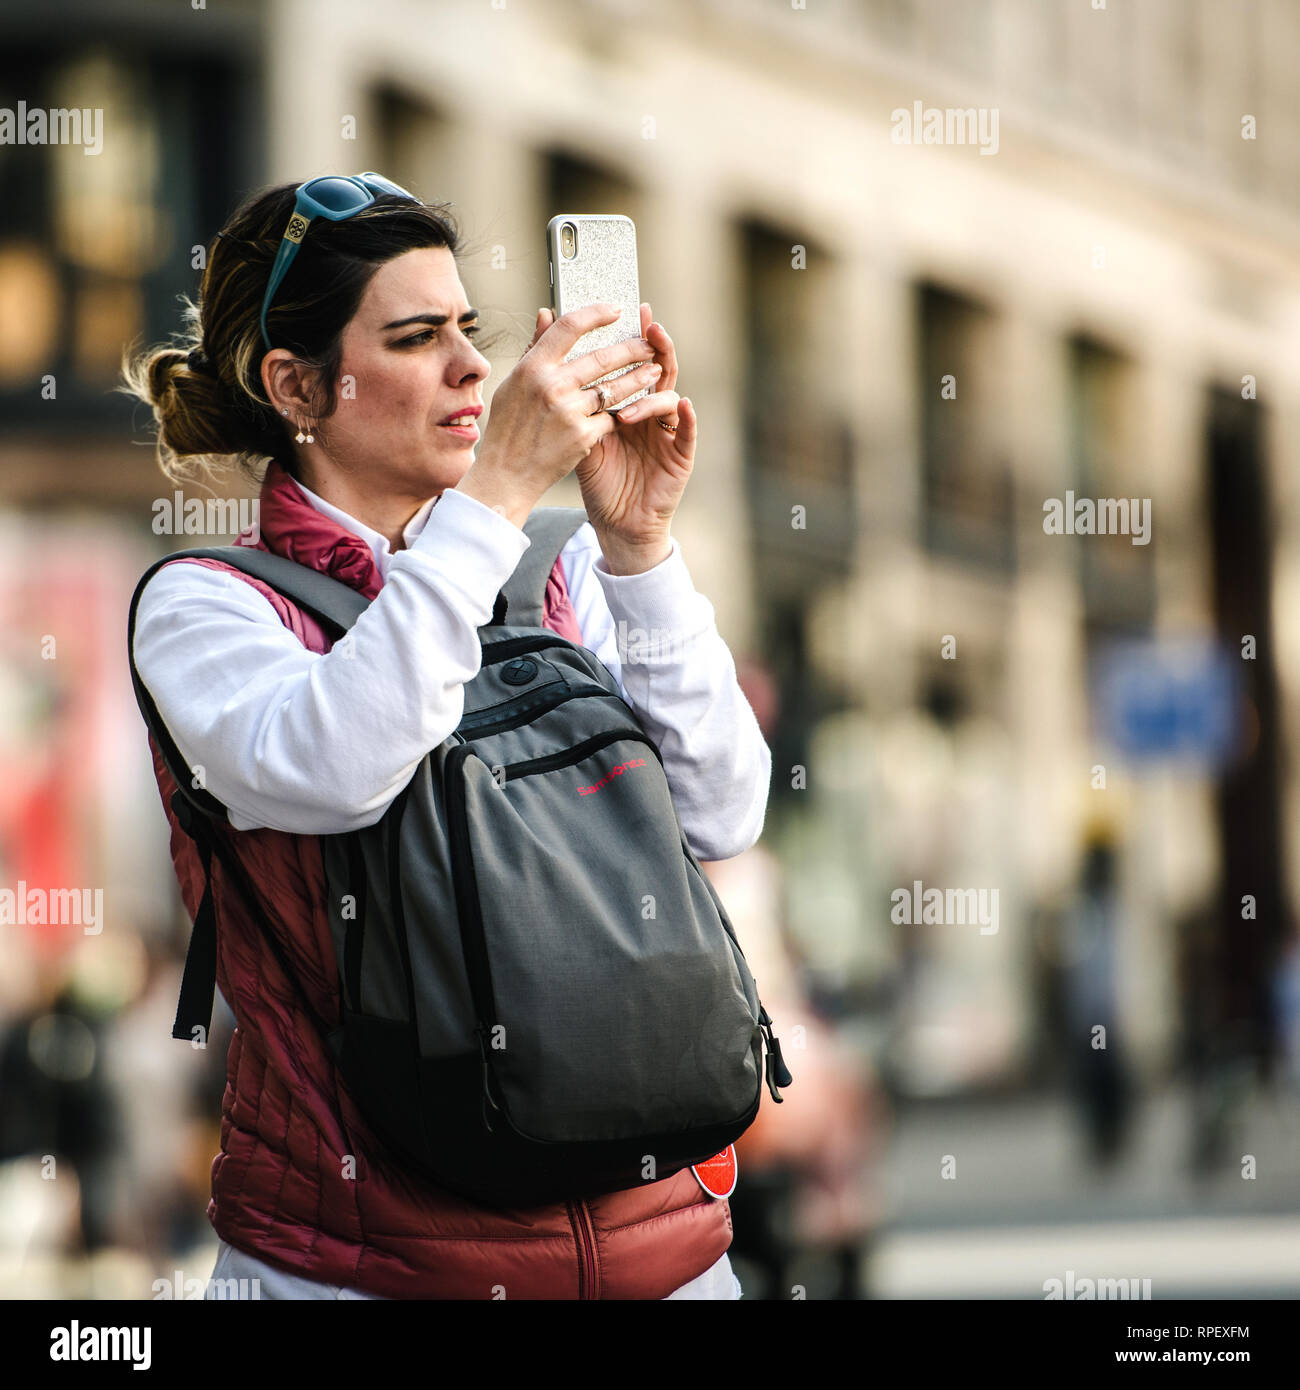 LONDON, UNITED KINGDOM - MAY 18, 2018: Woman taking photograph with her iPhone Xs smartphone on the fashionable Regent Street square image - Stock Image